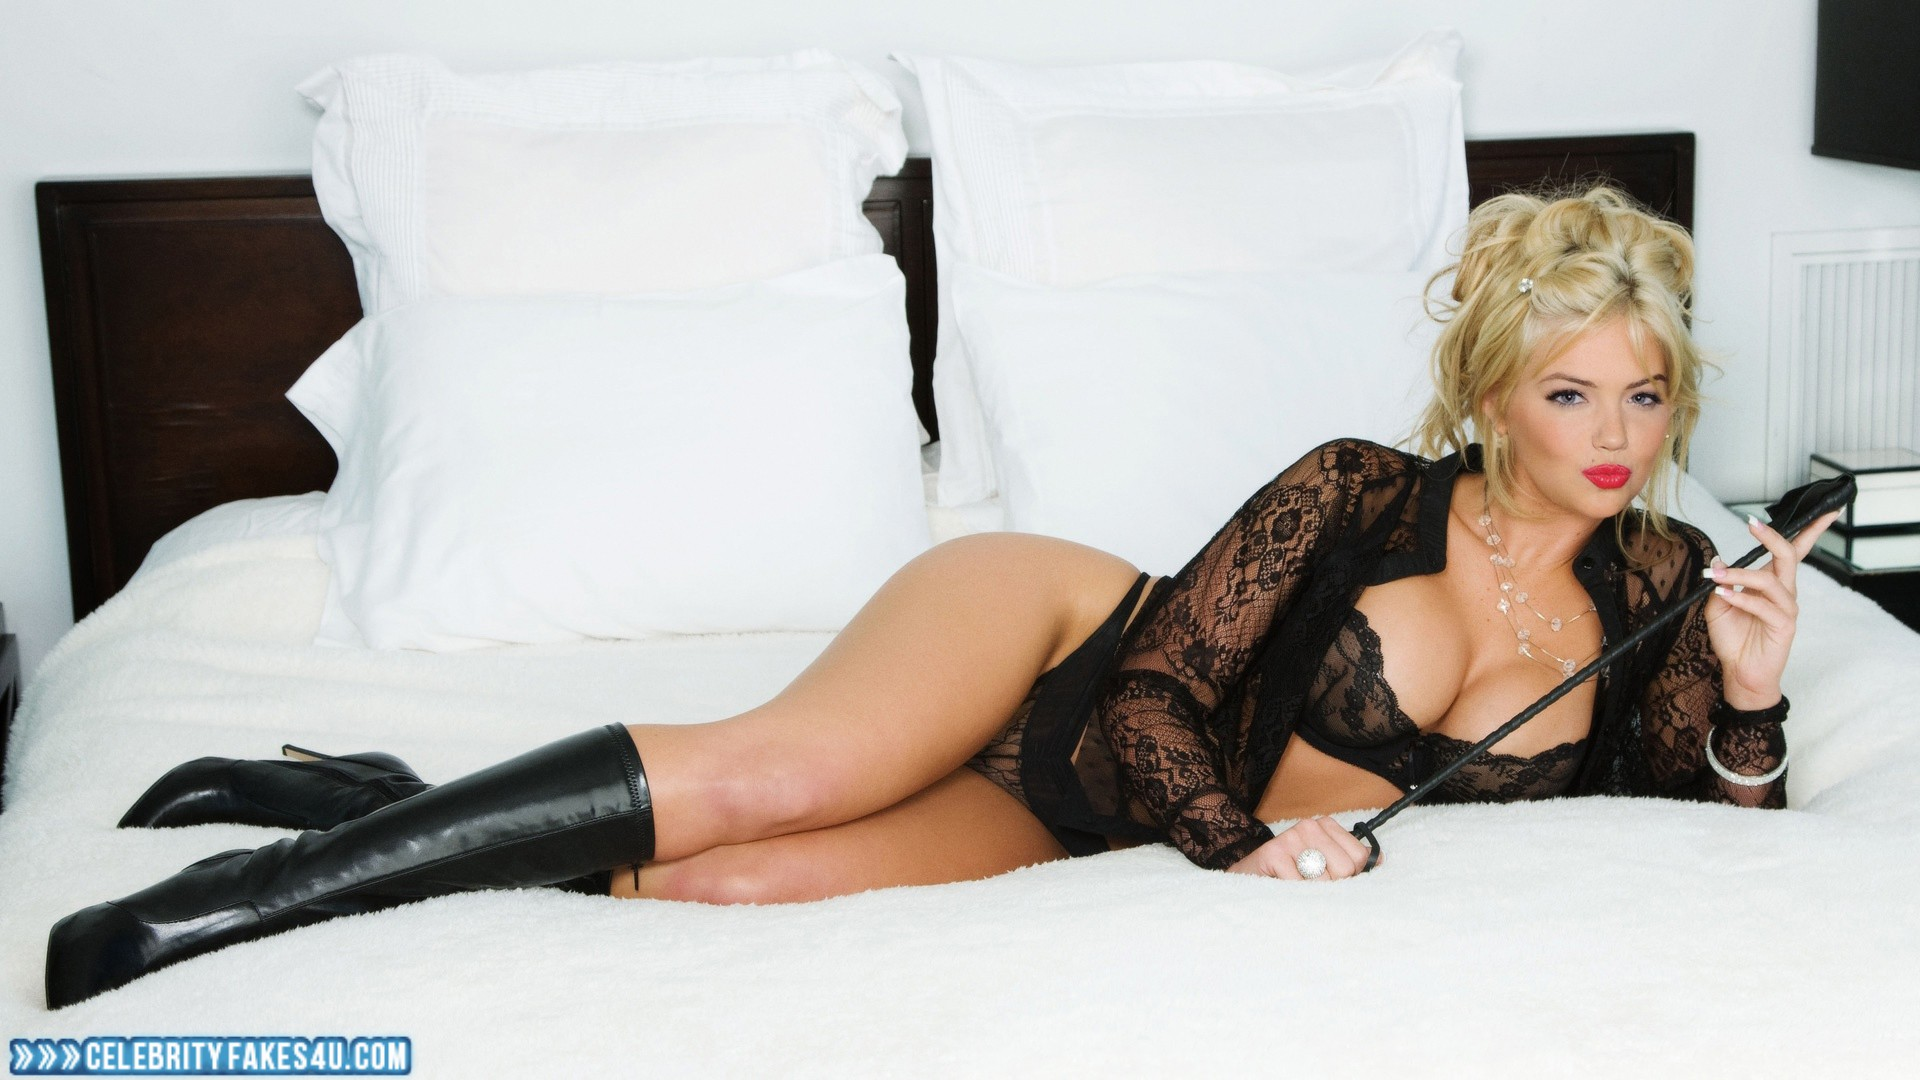 Kate Upton Nude Fakes Awesome kate upton knee high boots lingerie naked 001 « celebrityfakes4u